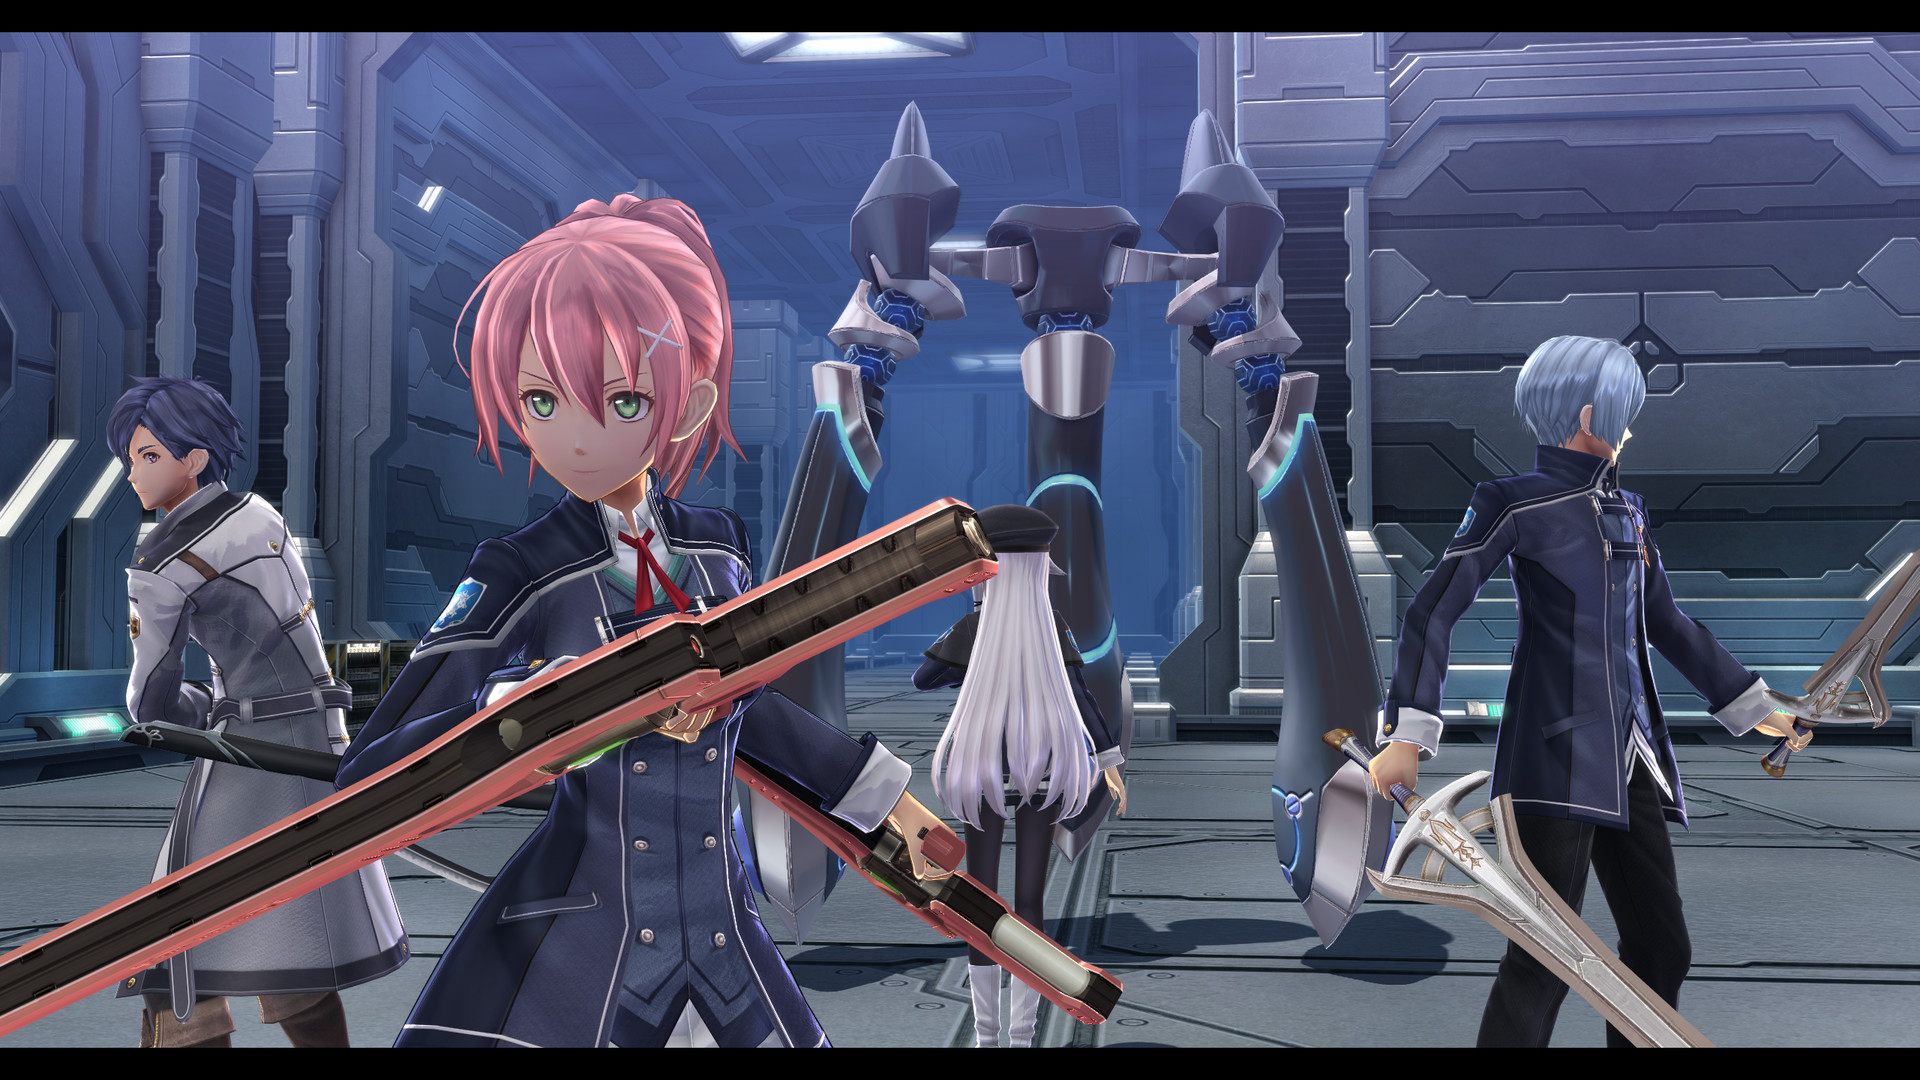 Ролевая игра The Legend of Heroes: Trails of Cold Steel III обзавелась демоверсией на ПК и Nintendo Switch